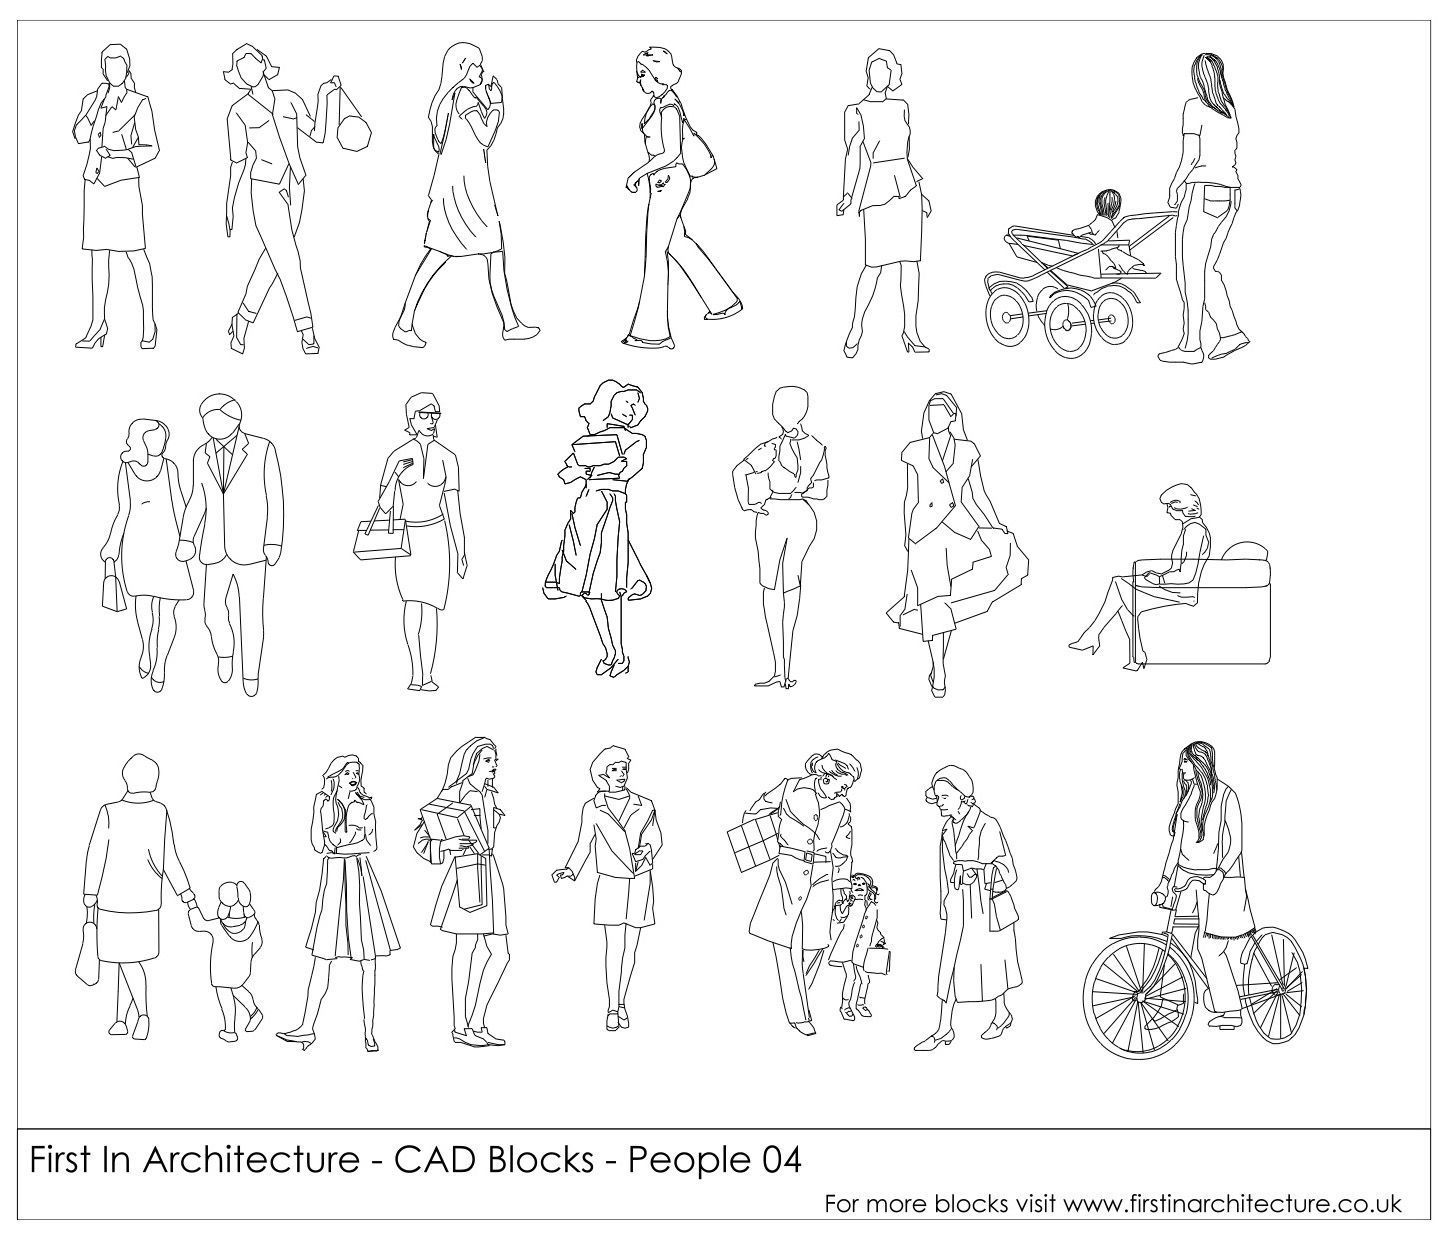 Bedroom Chair Cad Block Childrens Chairs With Arms 2 Free Blocks People 04 Autocad File Pinterest